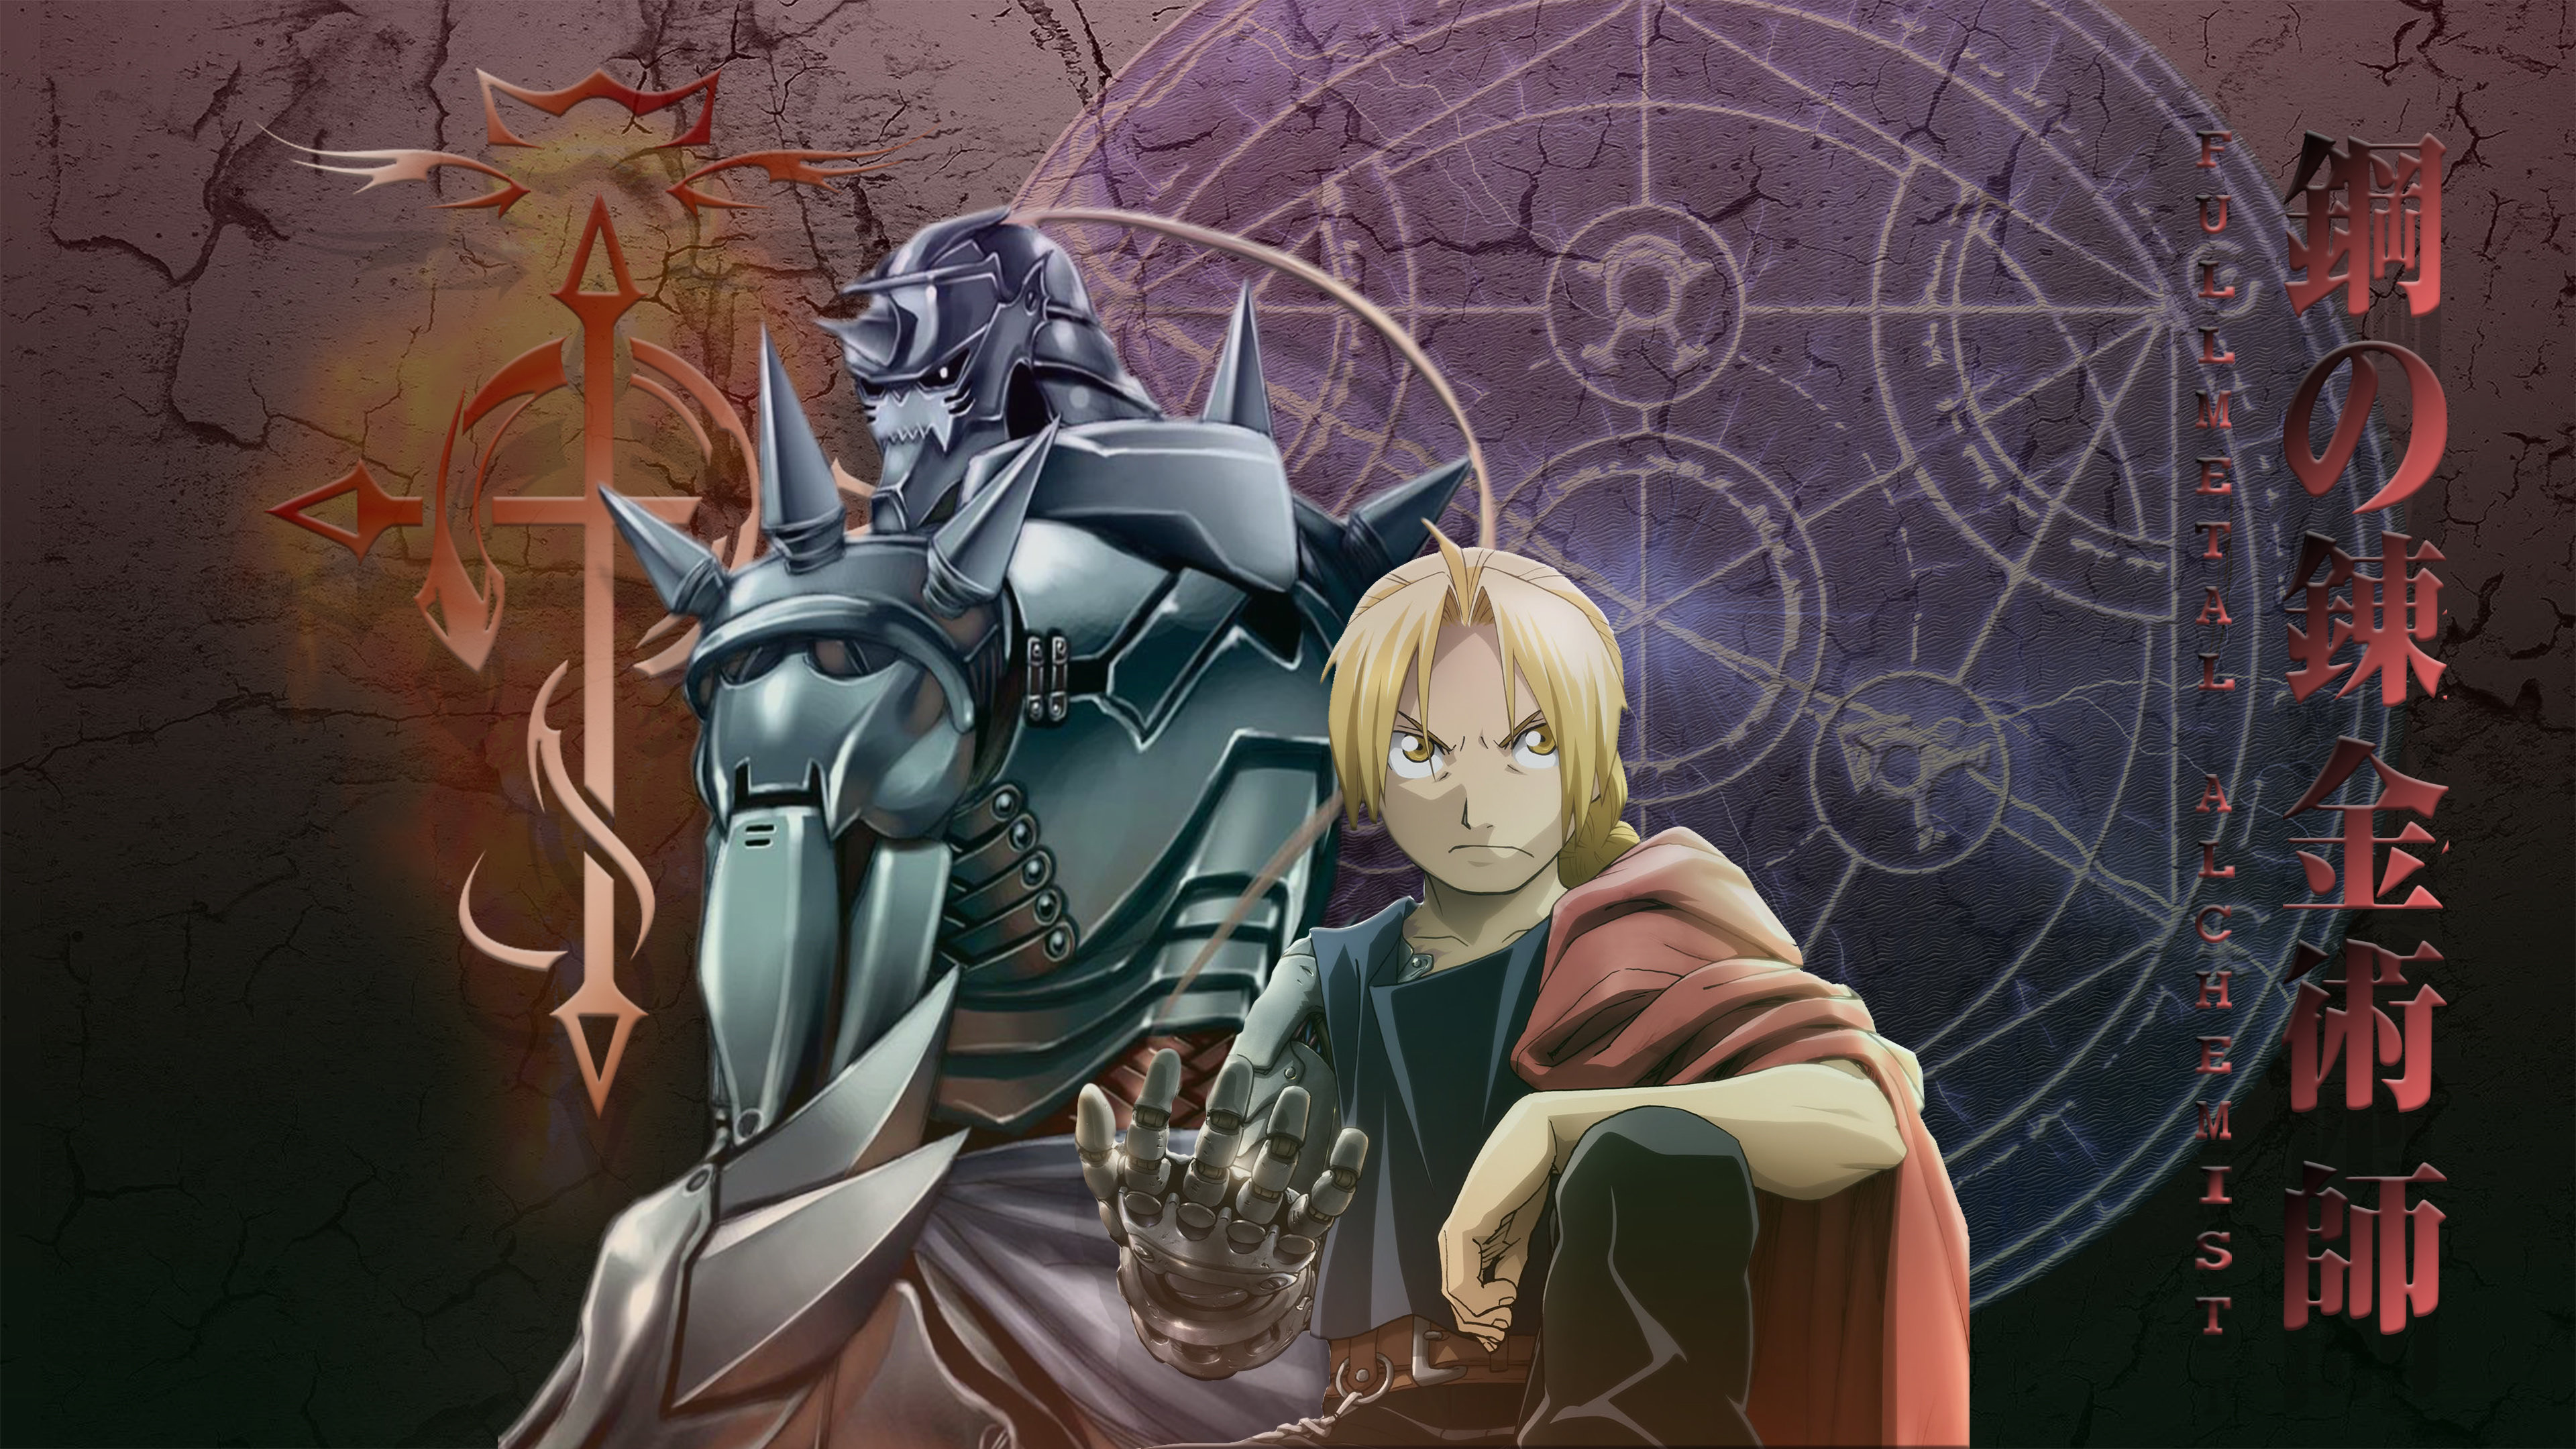 Download 4k FullMetal Alchemist (FMA) desktop wallpaper ID:310727 for free